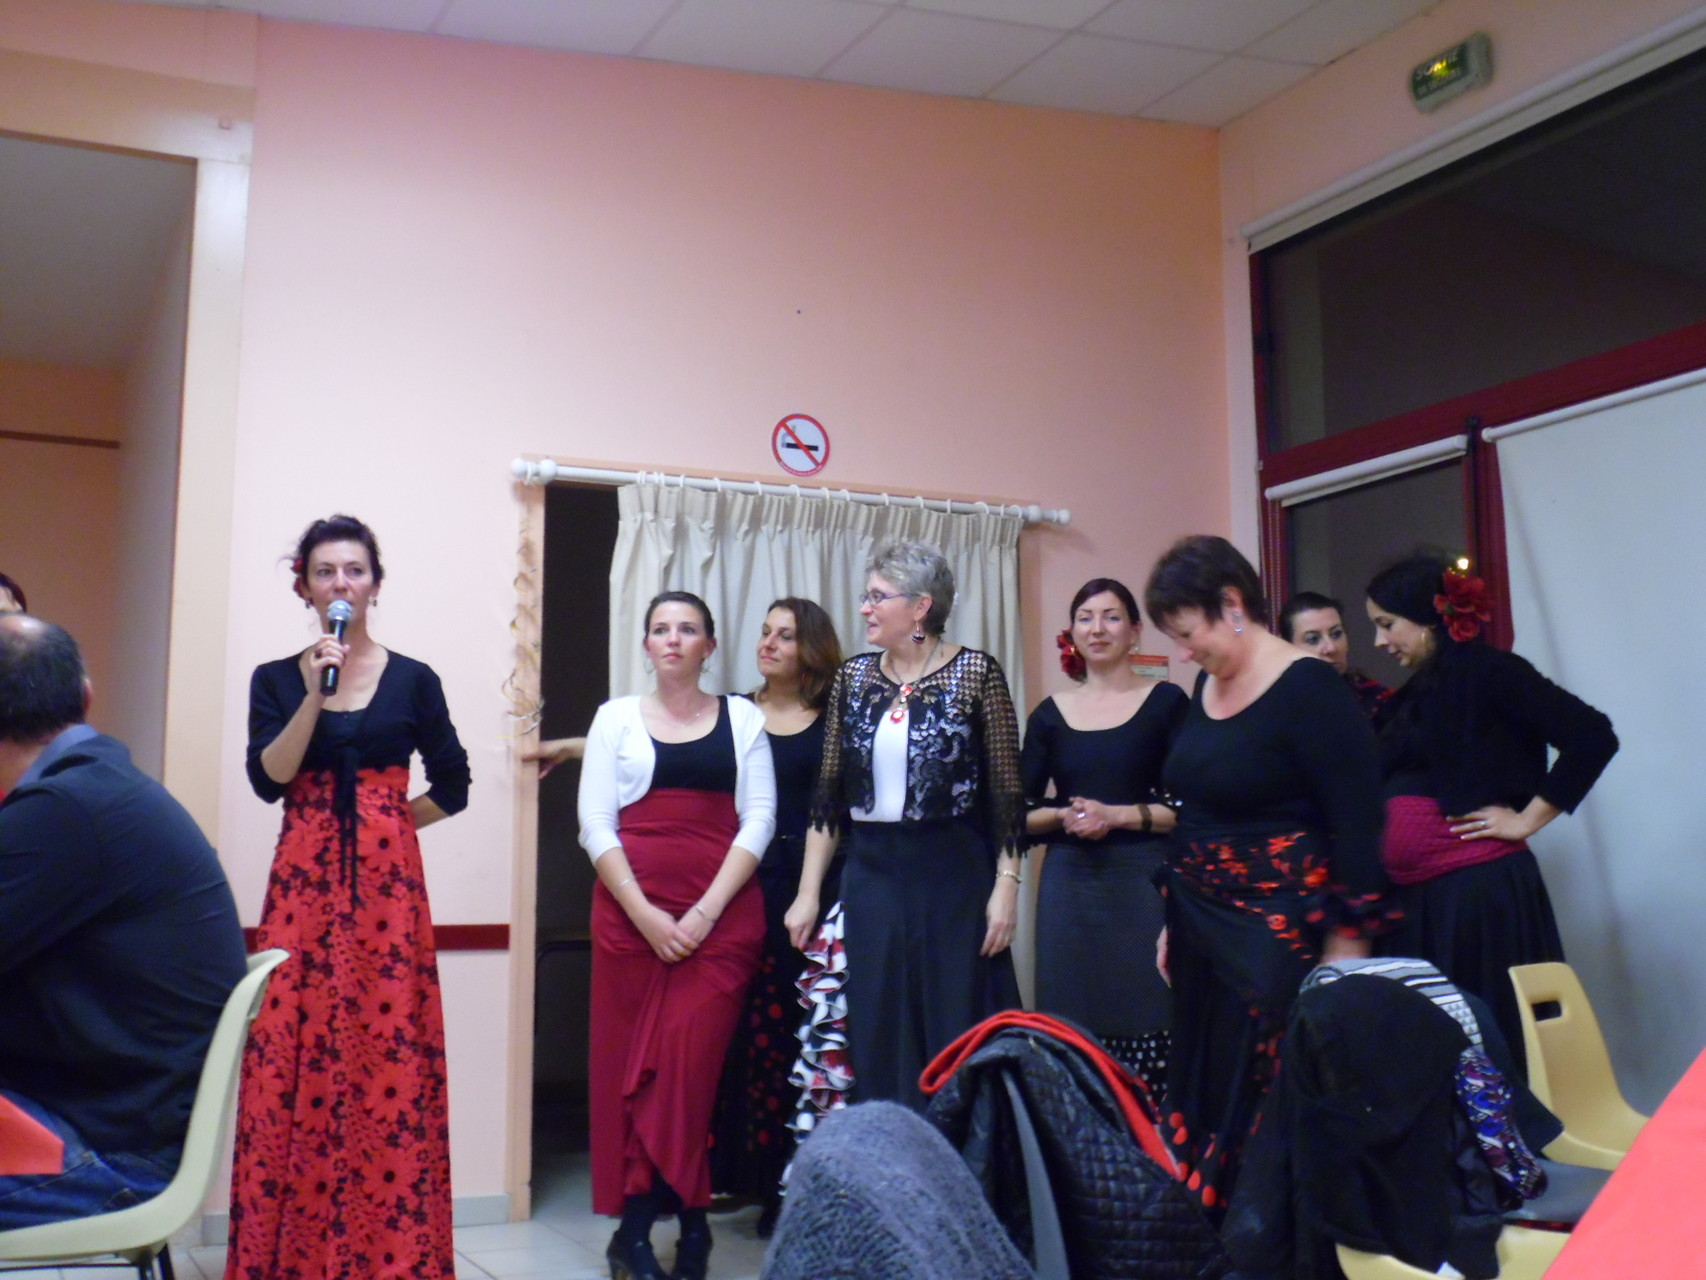 Le groupe Atelier Flamenco de bourges